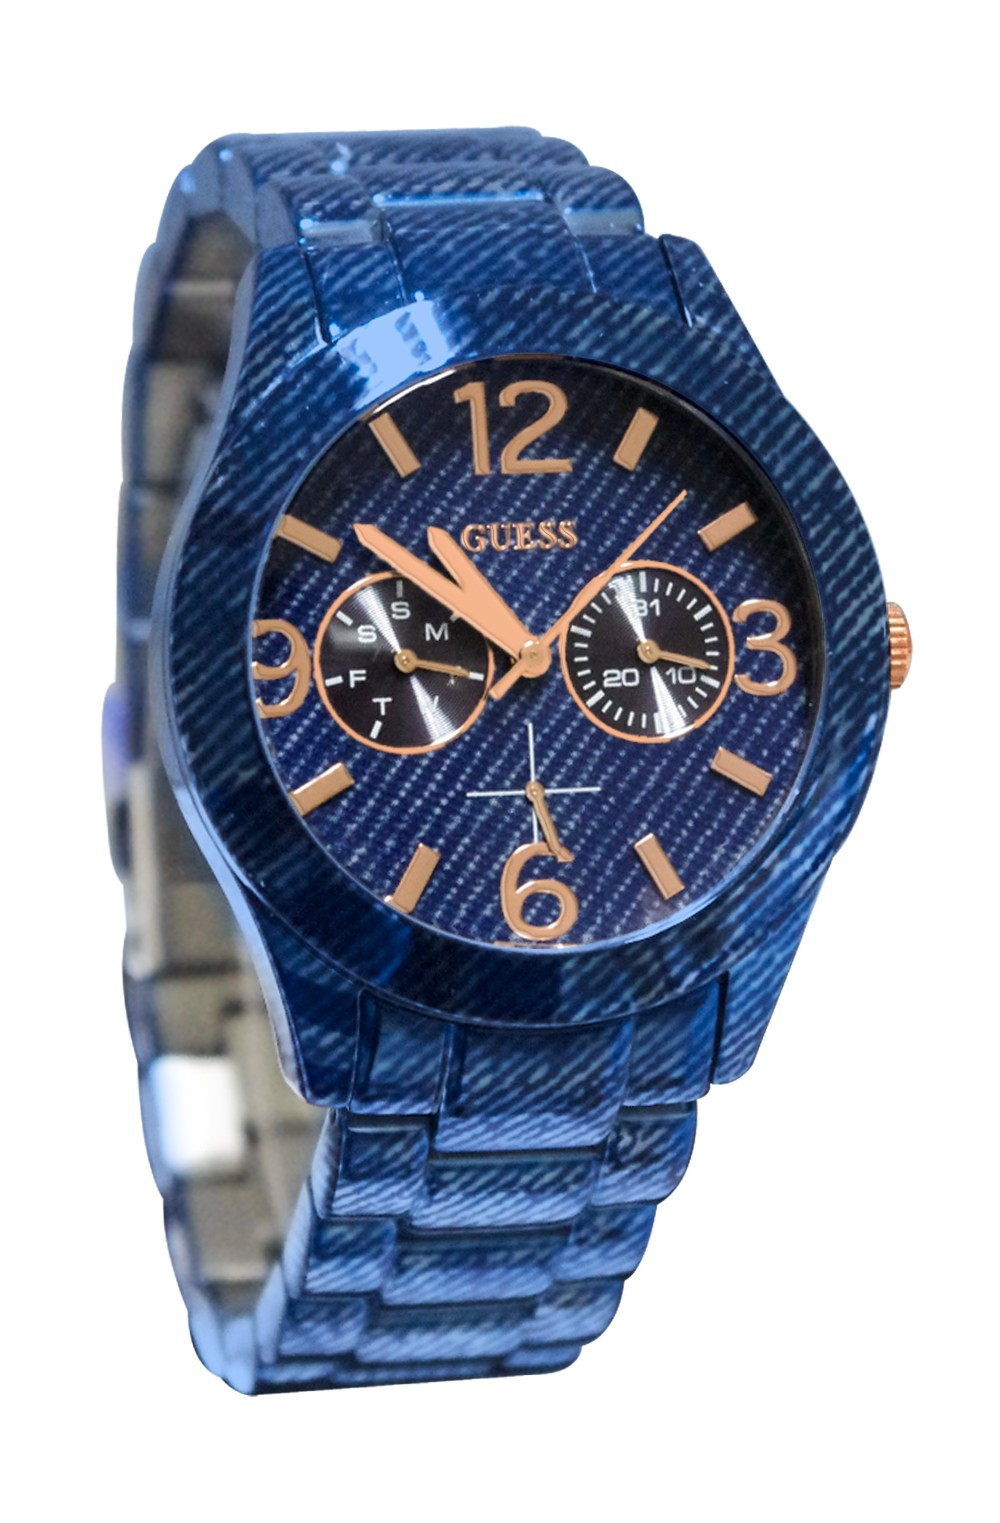 Denim watches couldn't be any trendier